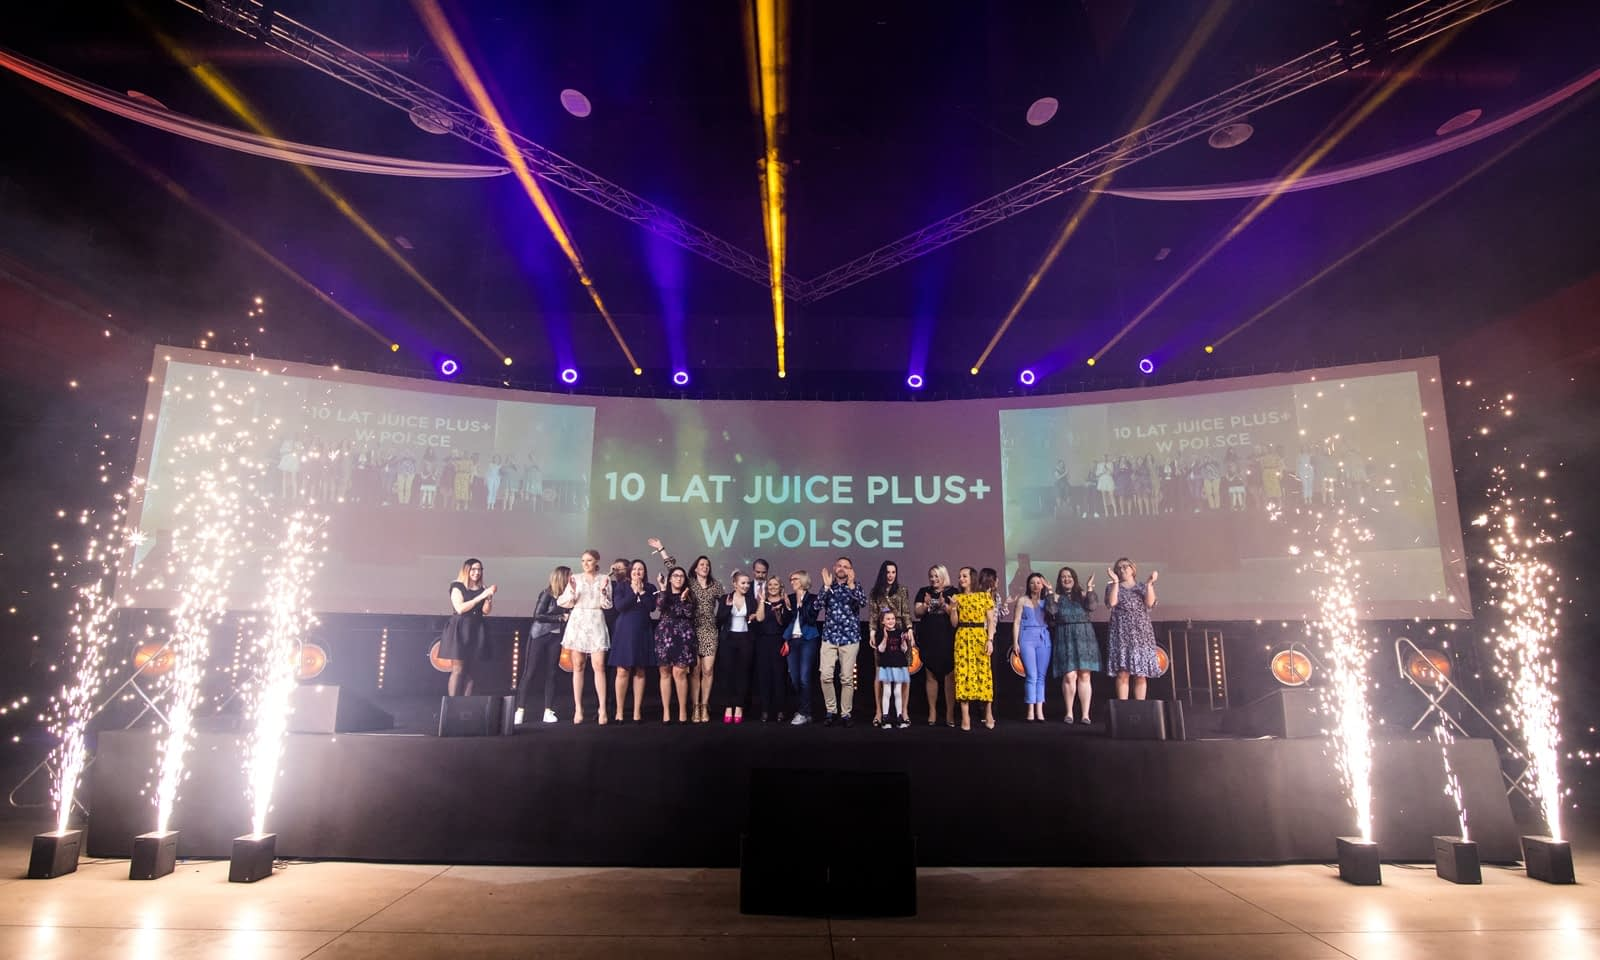 10 lat Juice Plus w Polsce Brill AV Media